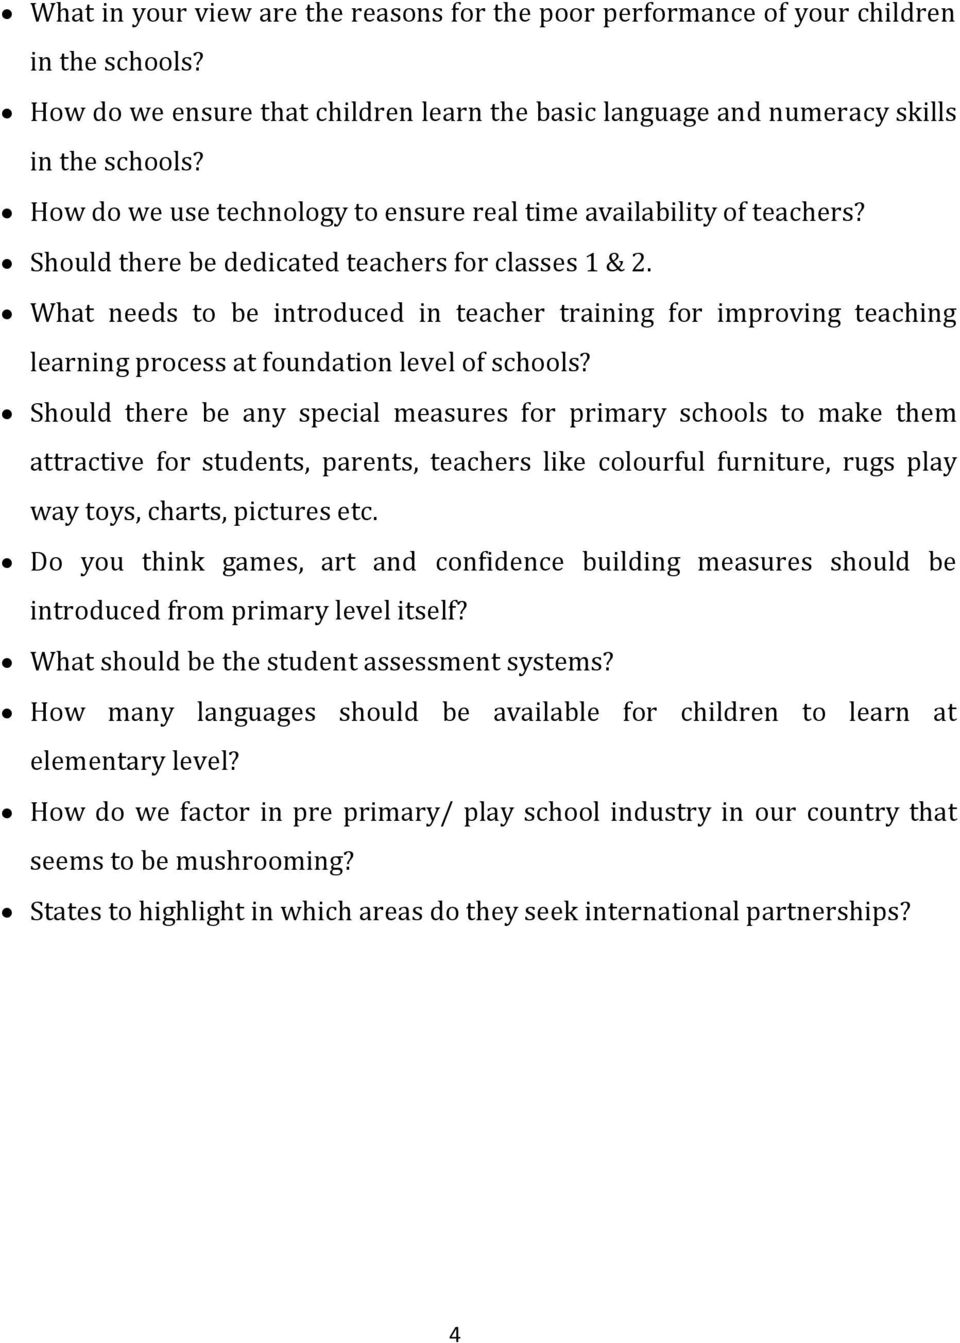 What needs to be introduced in teacher training for improving teaching learning process at foundation level of schools?